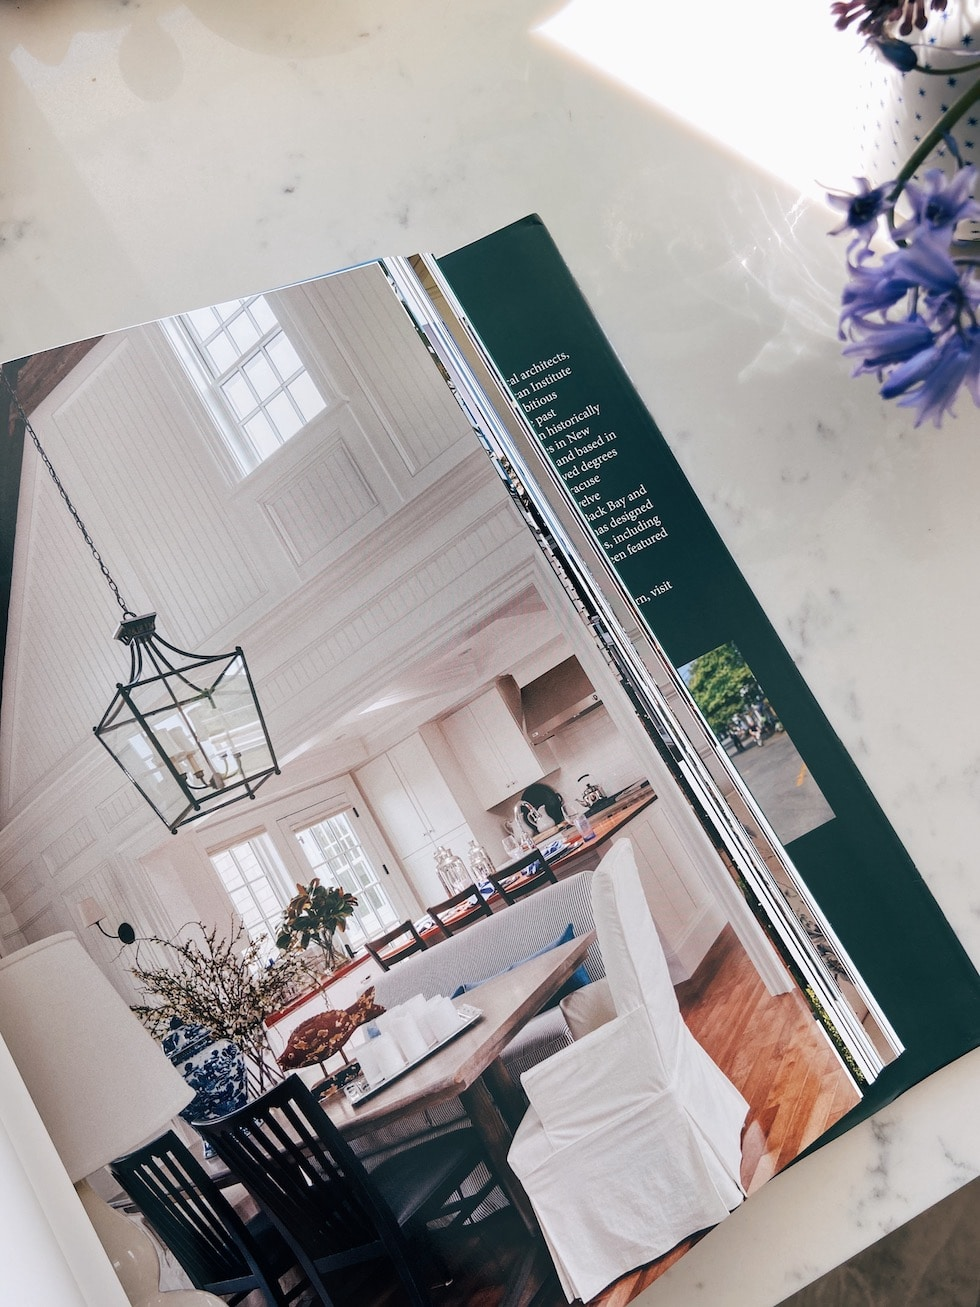 My All Time Favorite Home Decorating Book + Other Favorites!